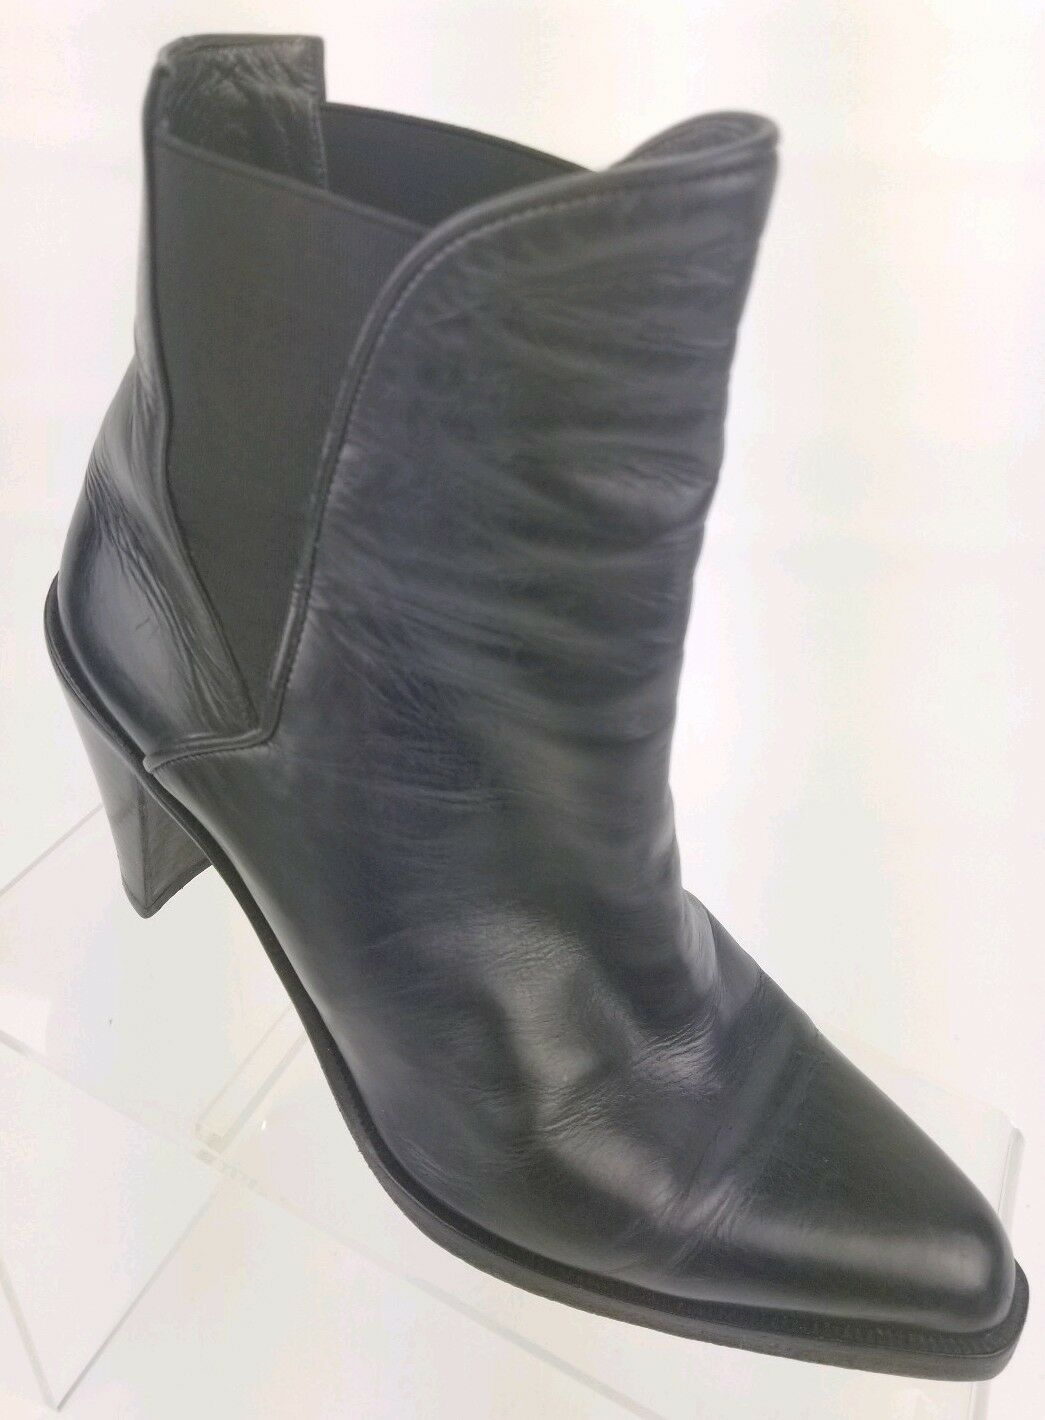 VIA SPIGA Women's Chelsea Ankle Boots Black Leather Pointed Toe Pull On Size 6